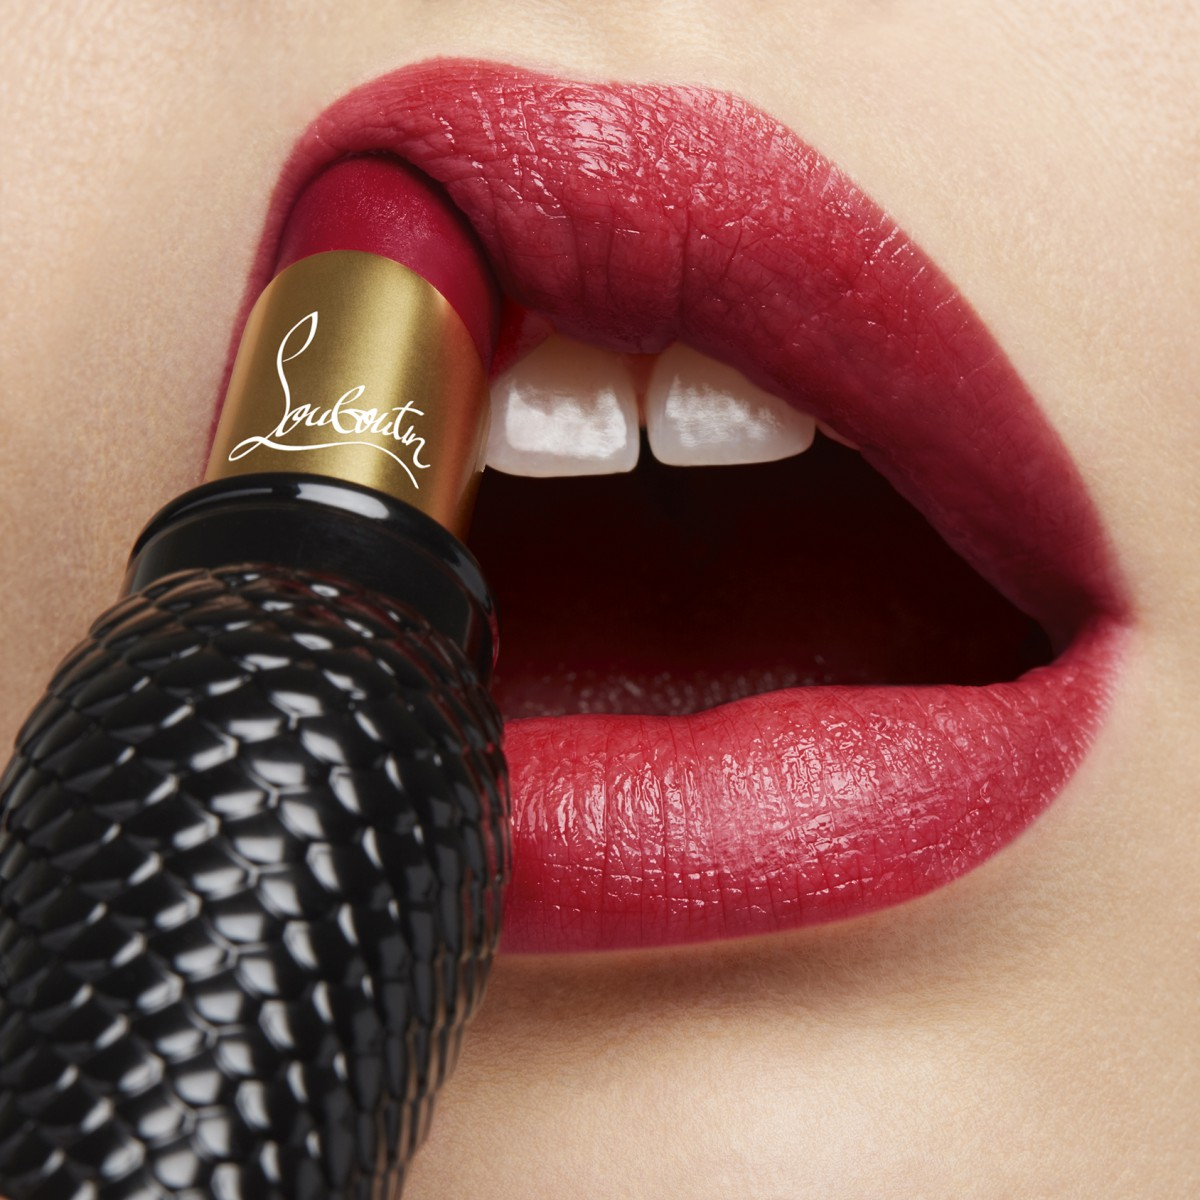 Woman Beauty - Rouge Louboutin Sheer Voile - Christian Louboutin